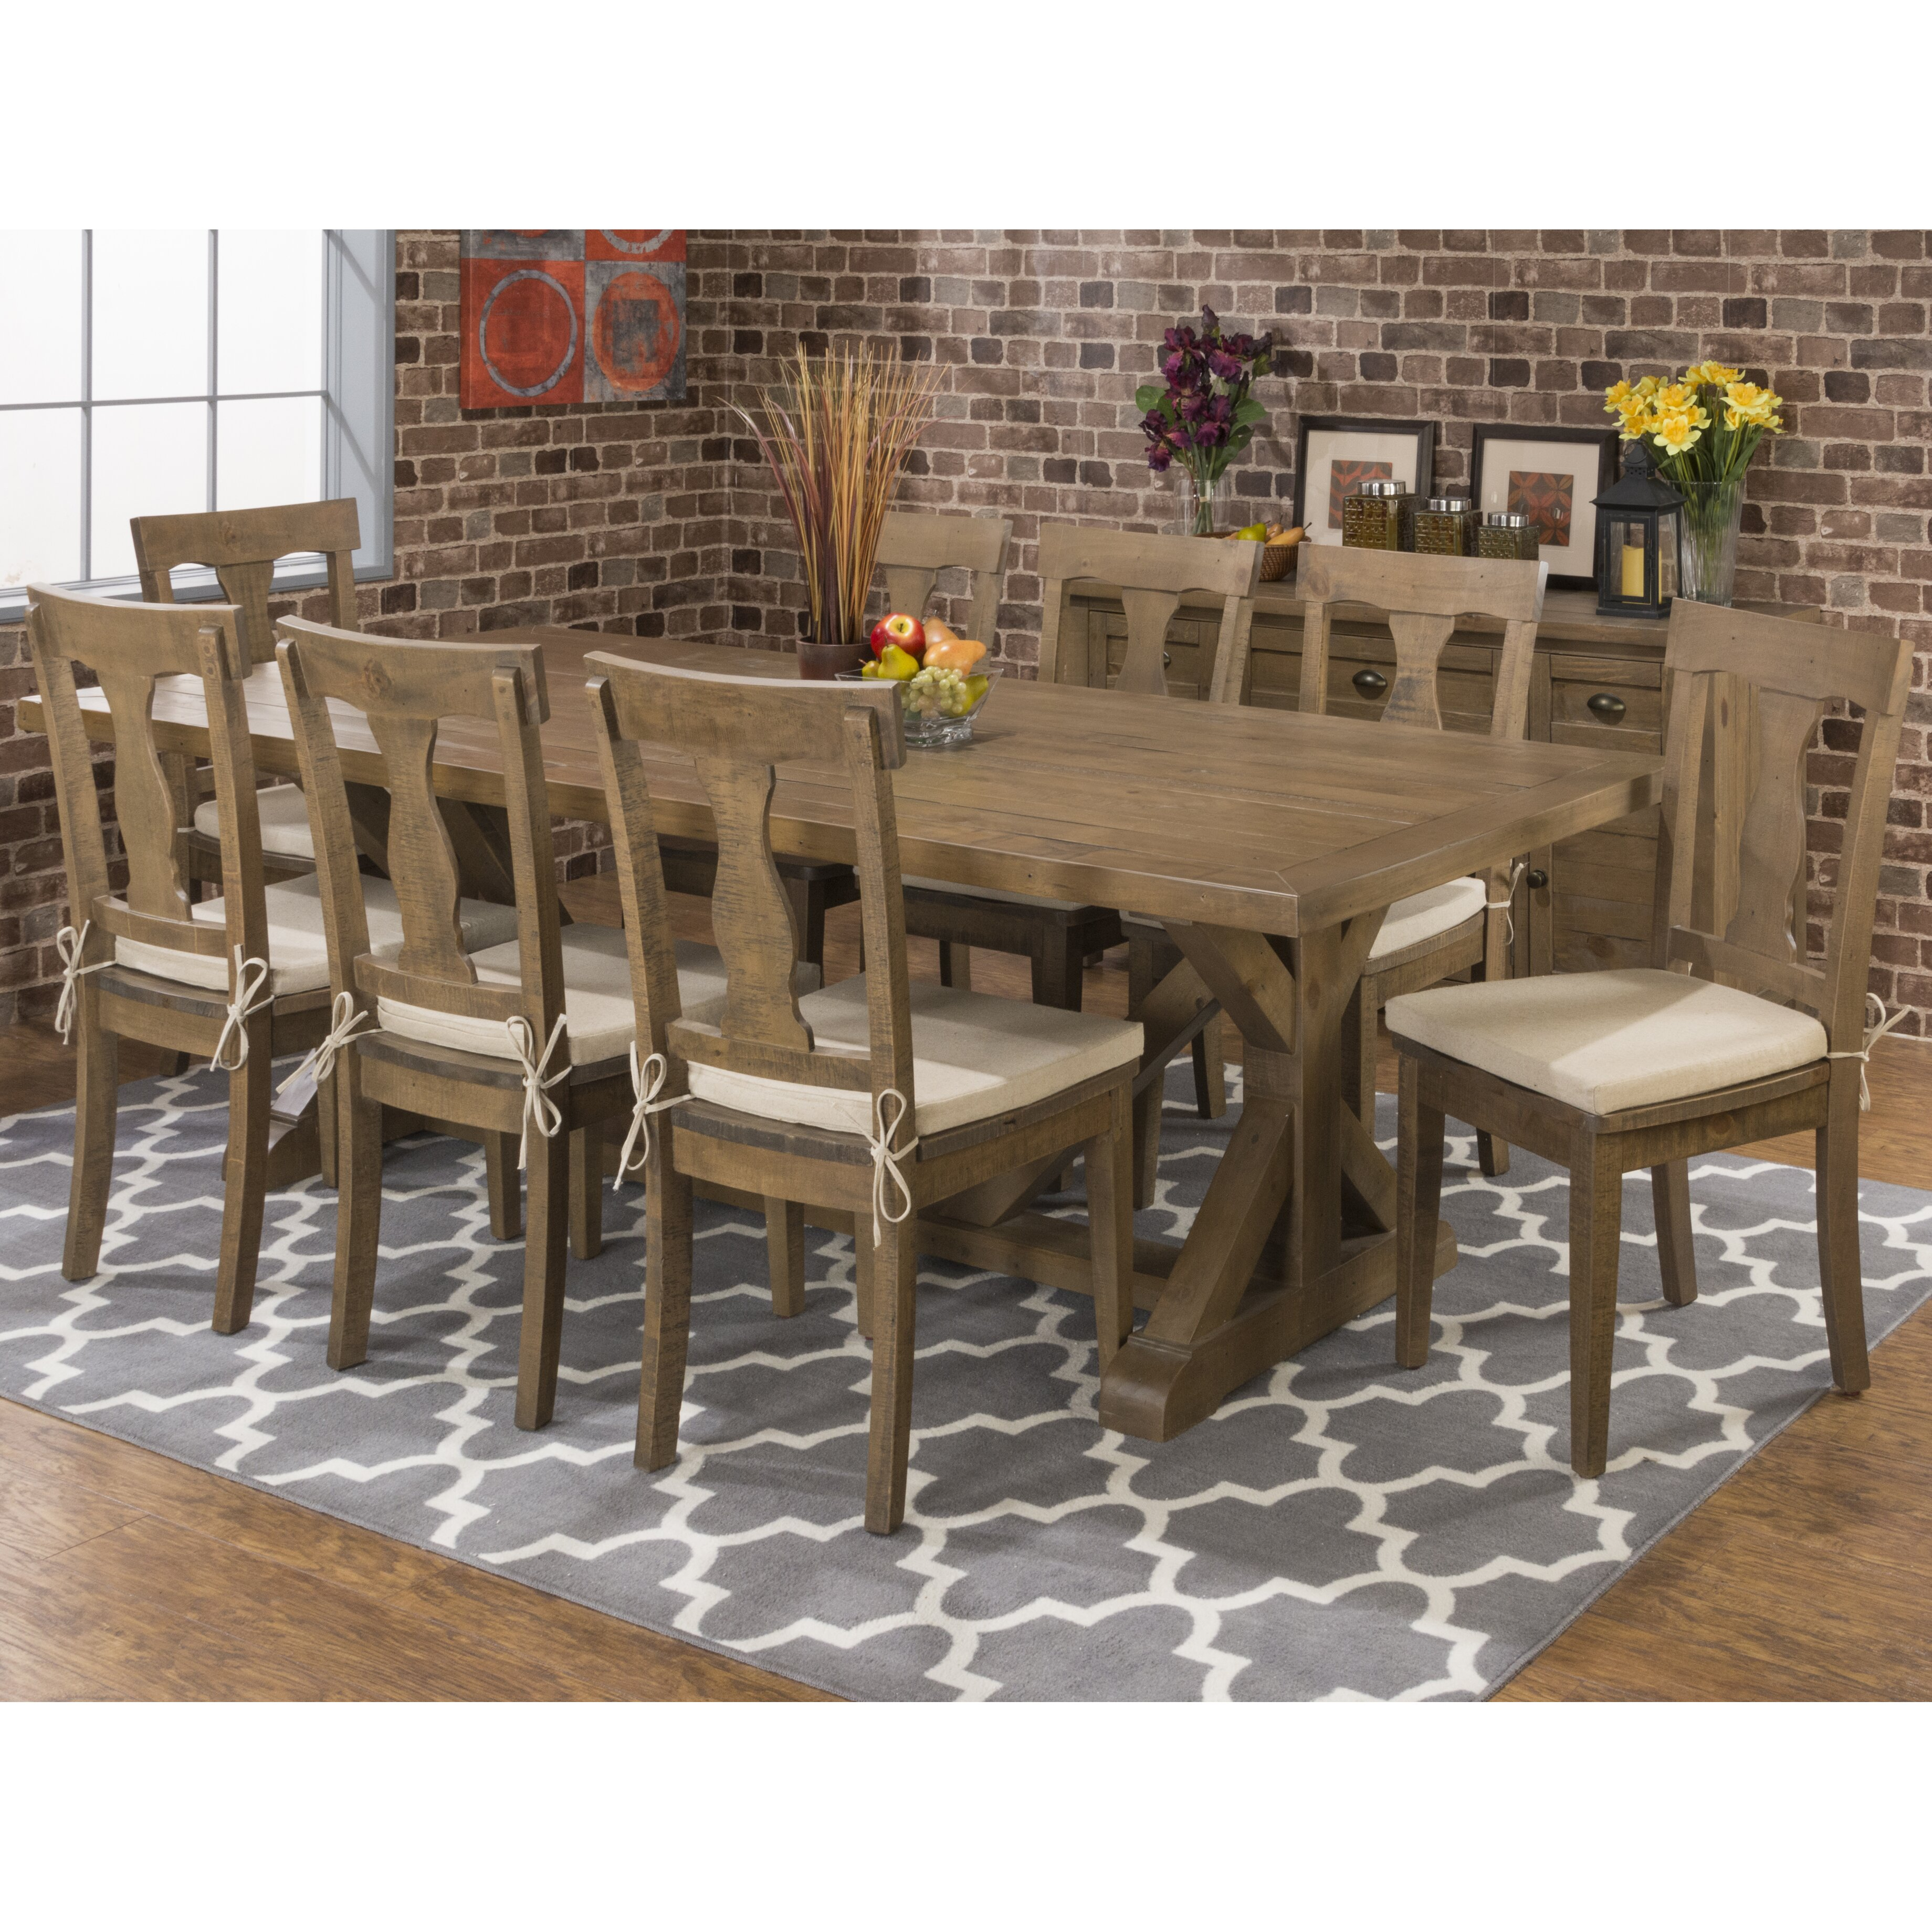 Jofran 737 66 round wooden dining table chairs set butterfly leaf - Previousnext